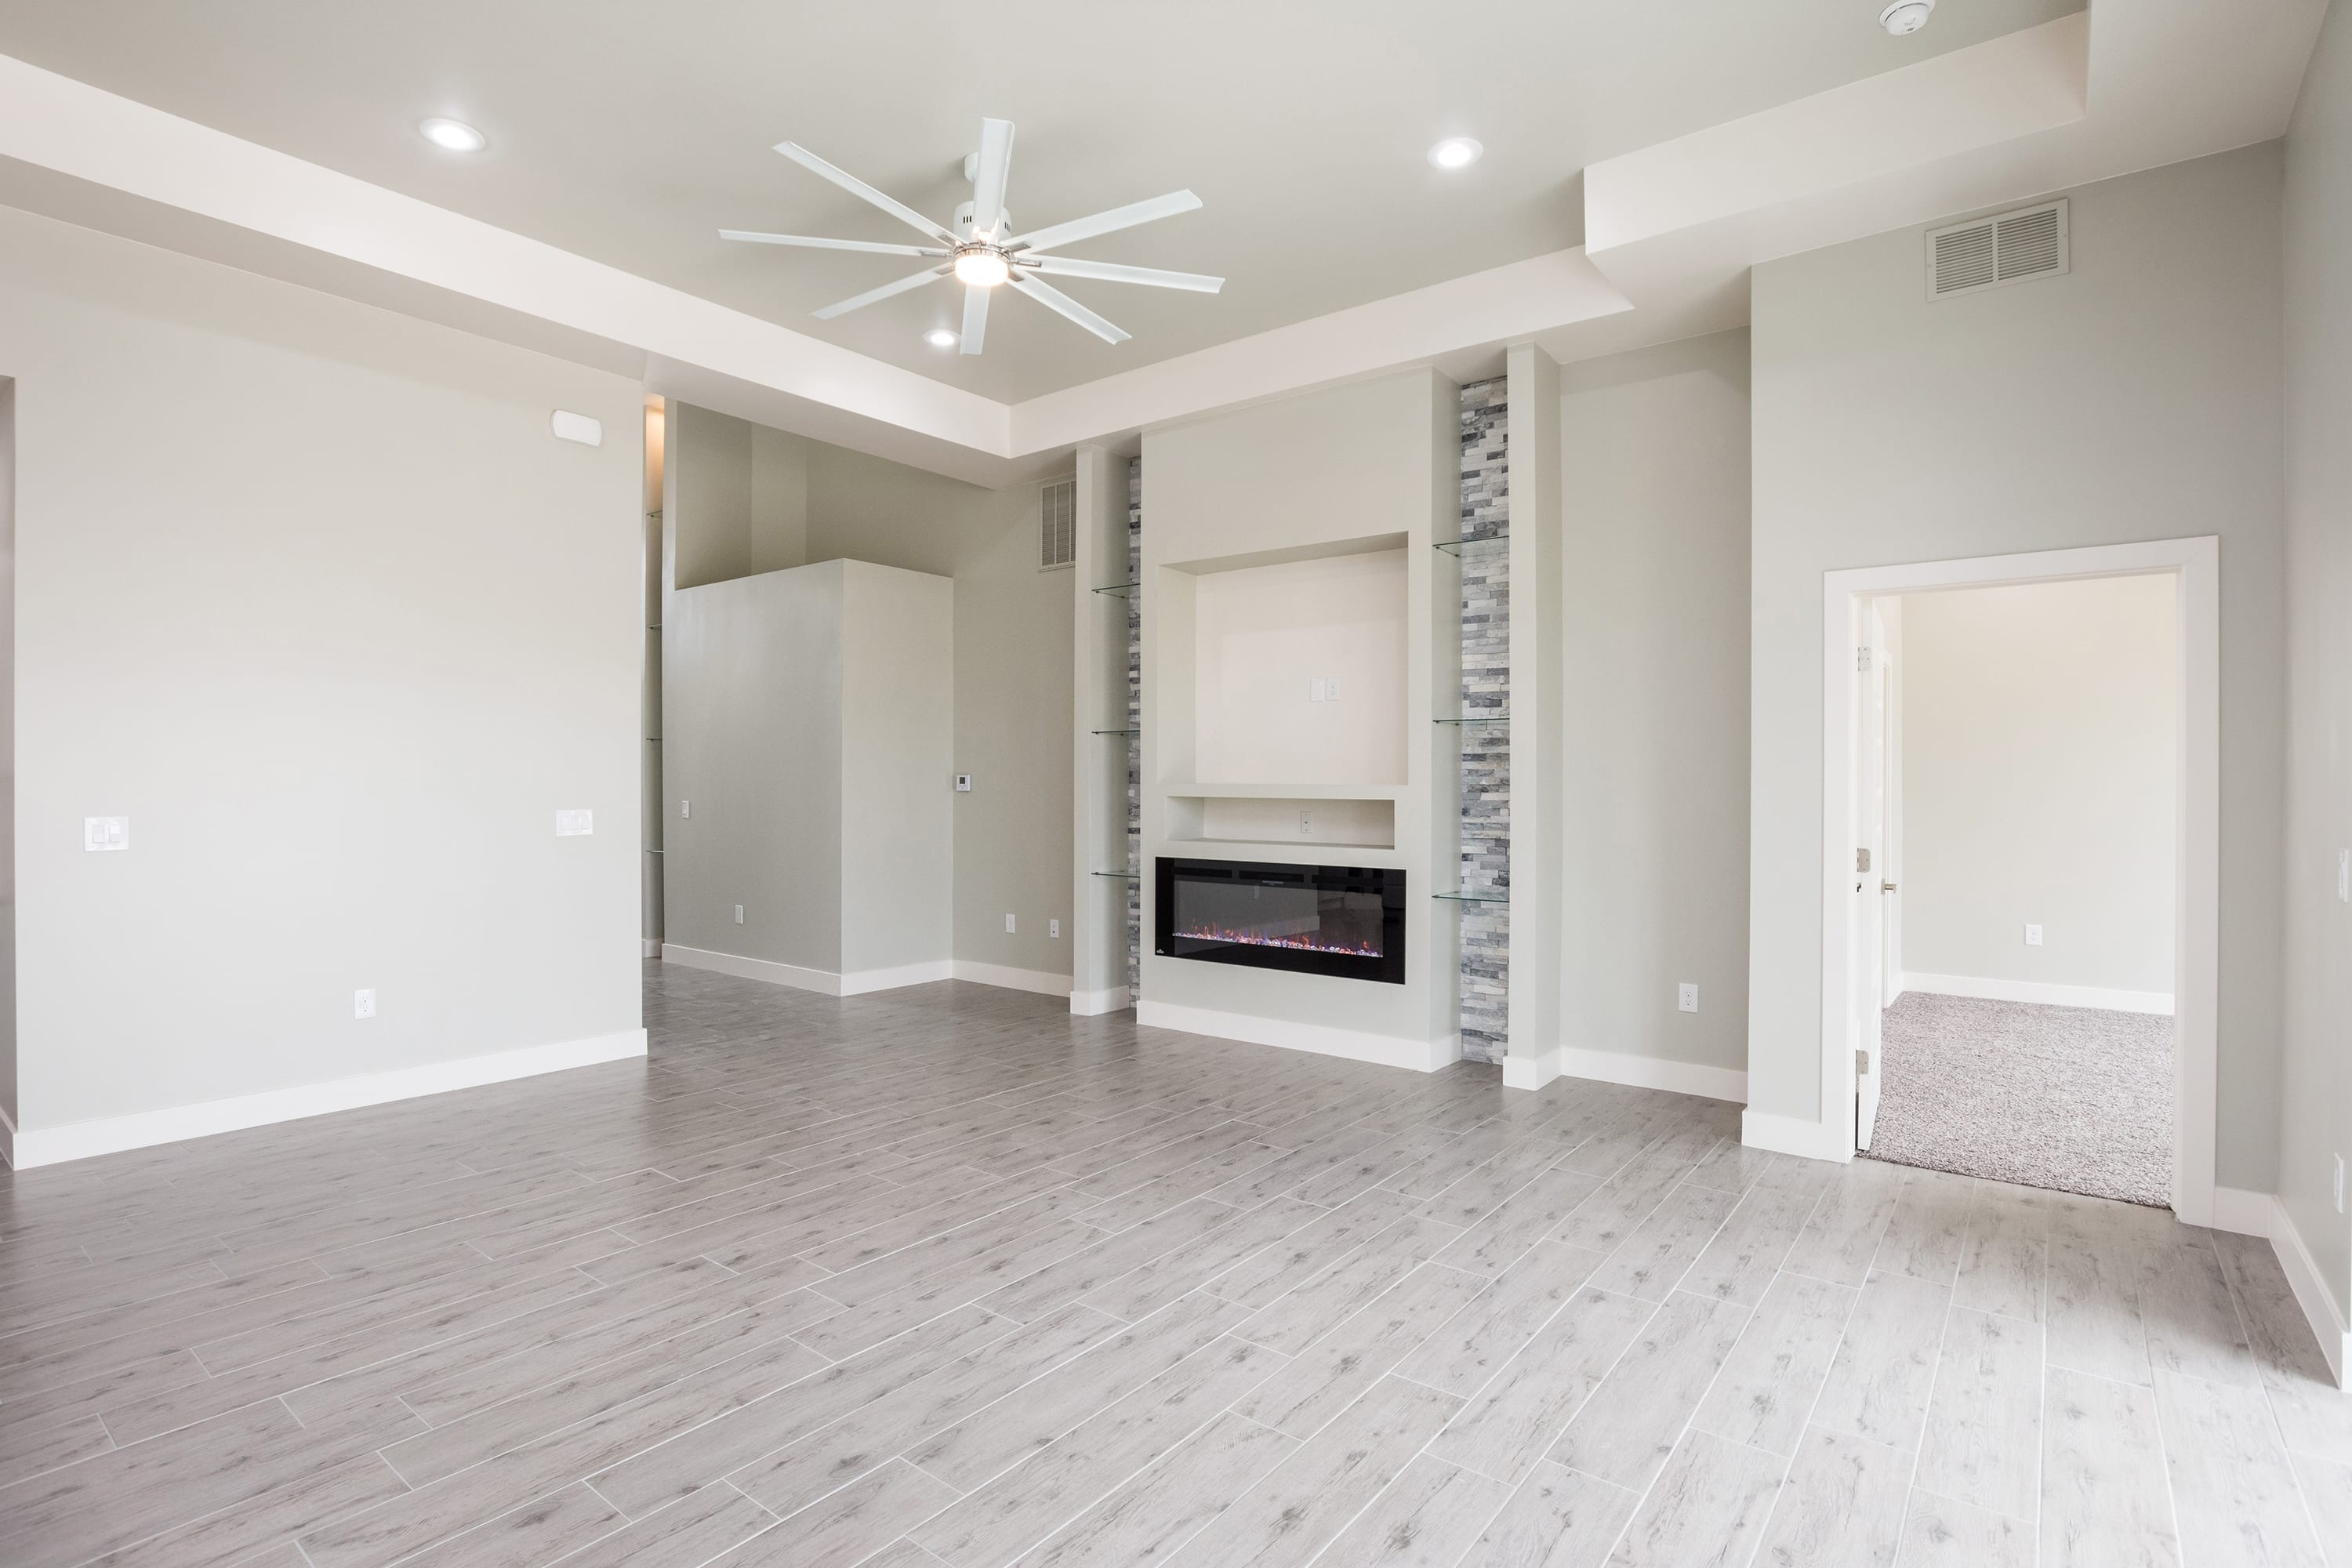 Interior ceiling shot of living area and fireplace in 2884 Maddox contemporary home